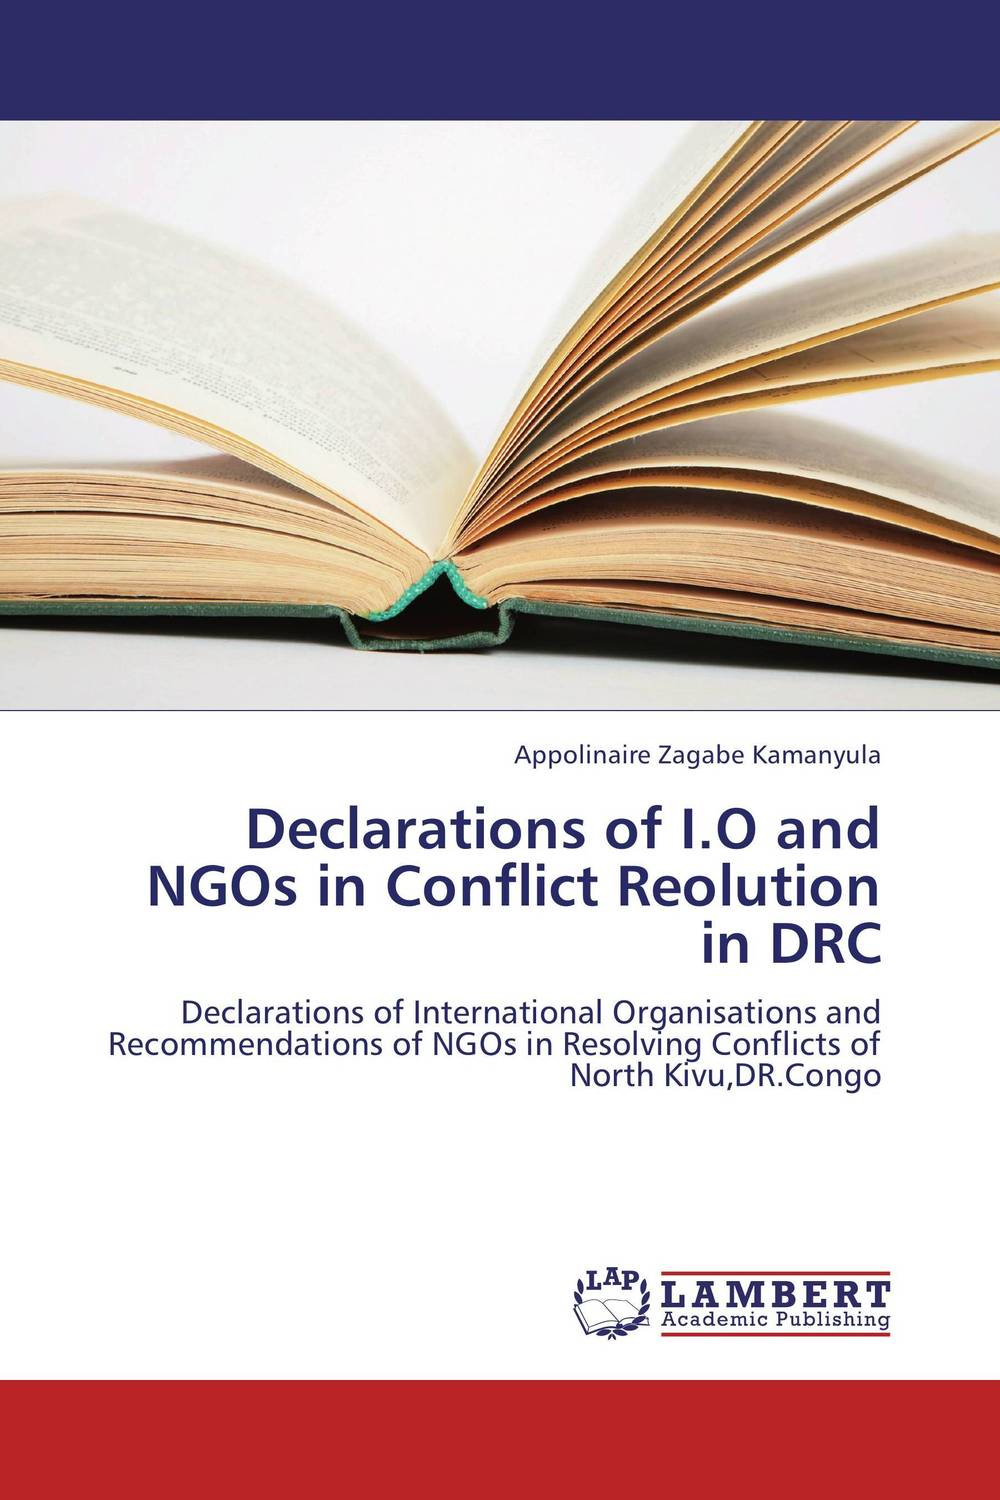 Declarations of I.O and NGOs in Conflict Reolution in DRC